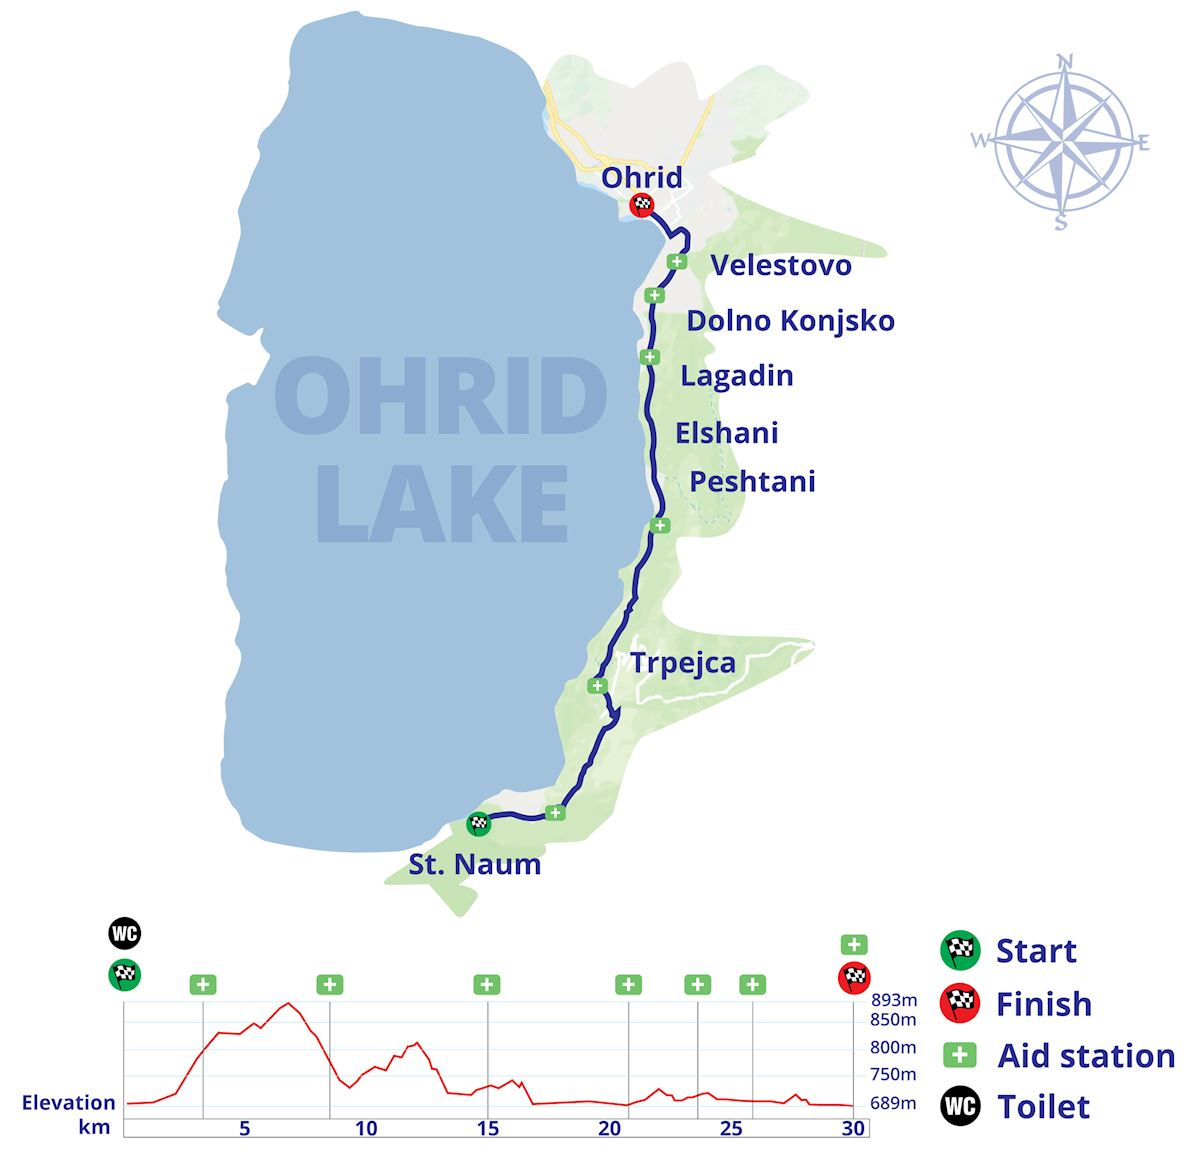 International Athletic Marathon Ohrid Route Map